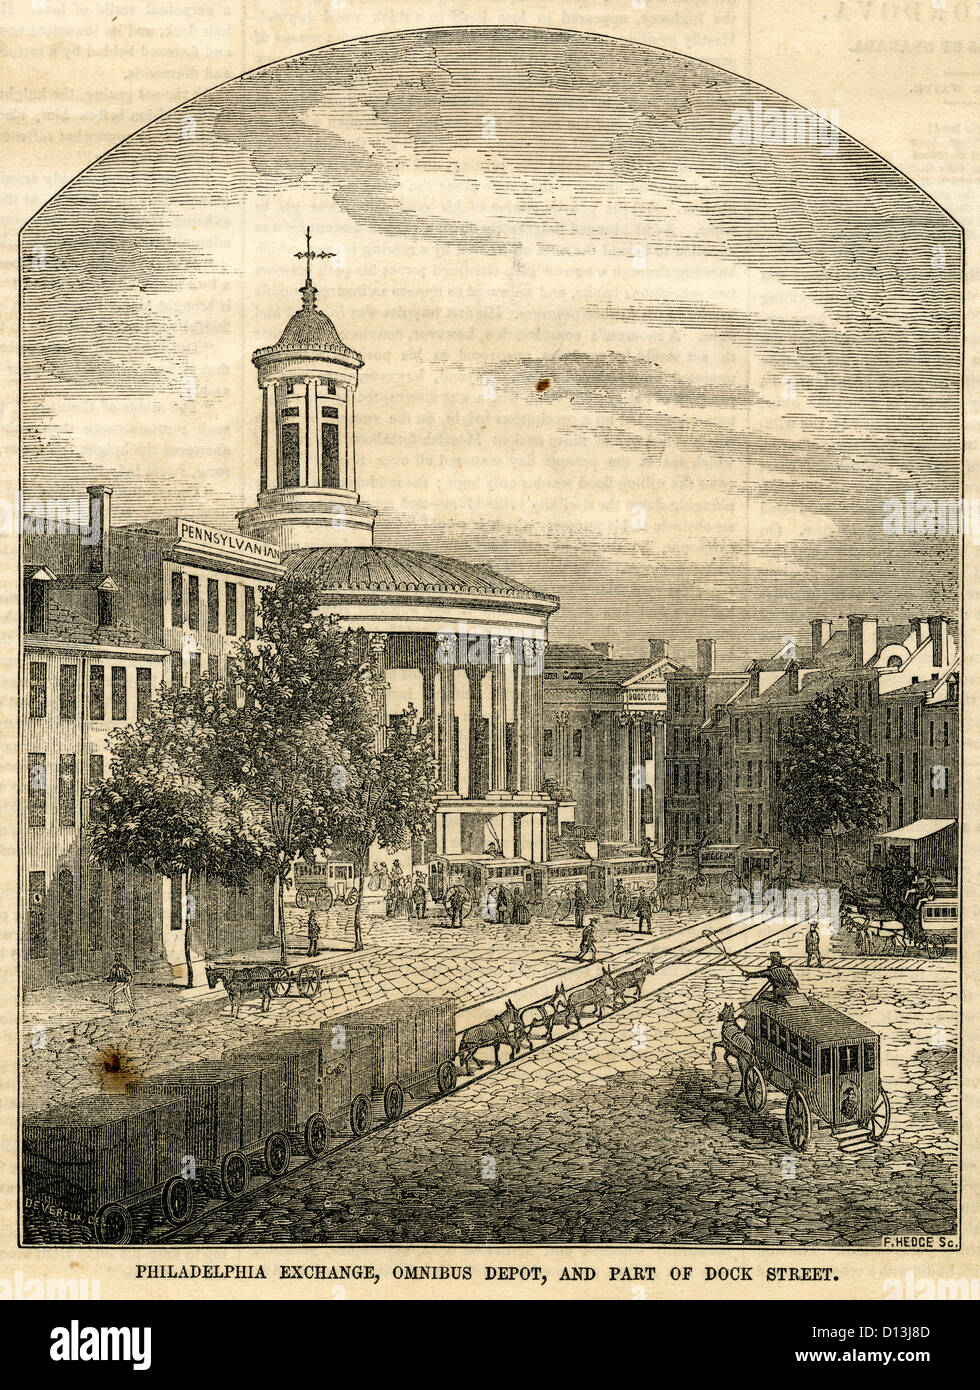 1854 engraving, Merchants' Exchange Building, Omnibus Depot, and Part of Dock Street in Philadelphia, Pennsylvania, - Stock Image